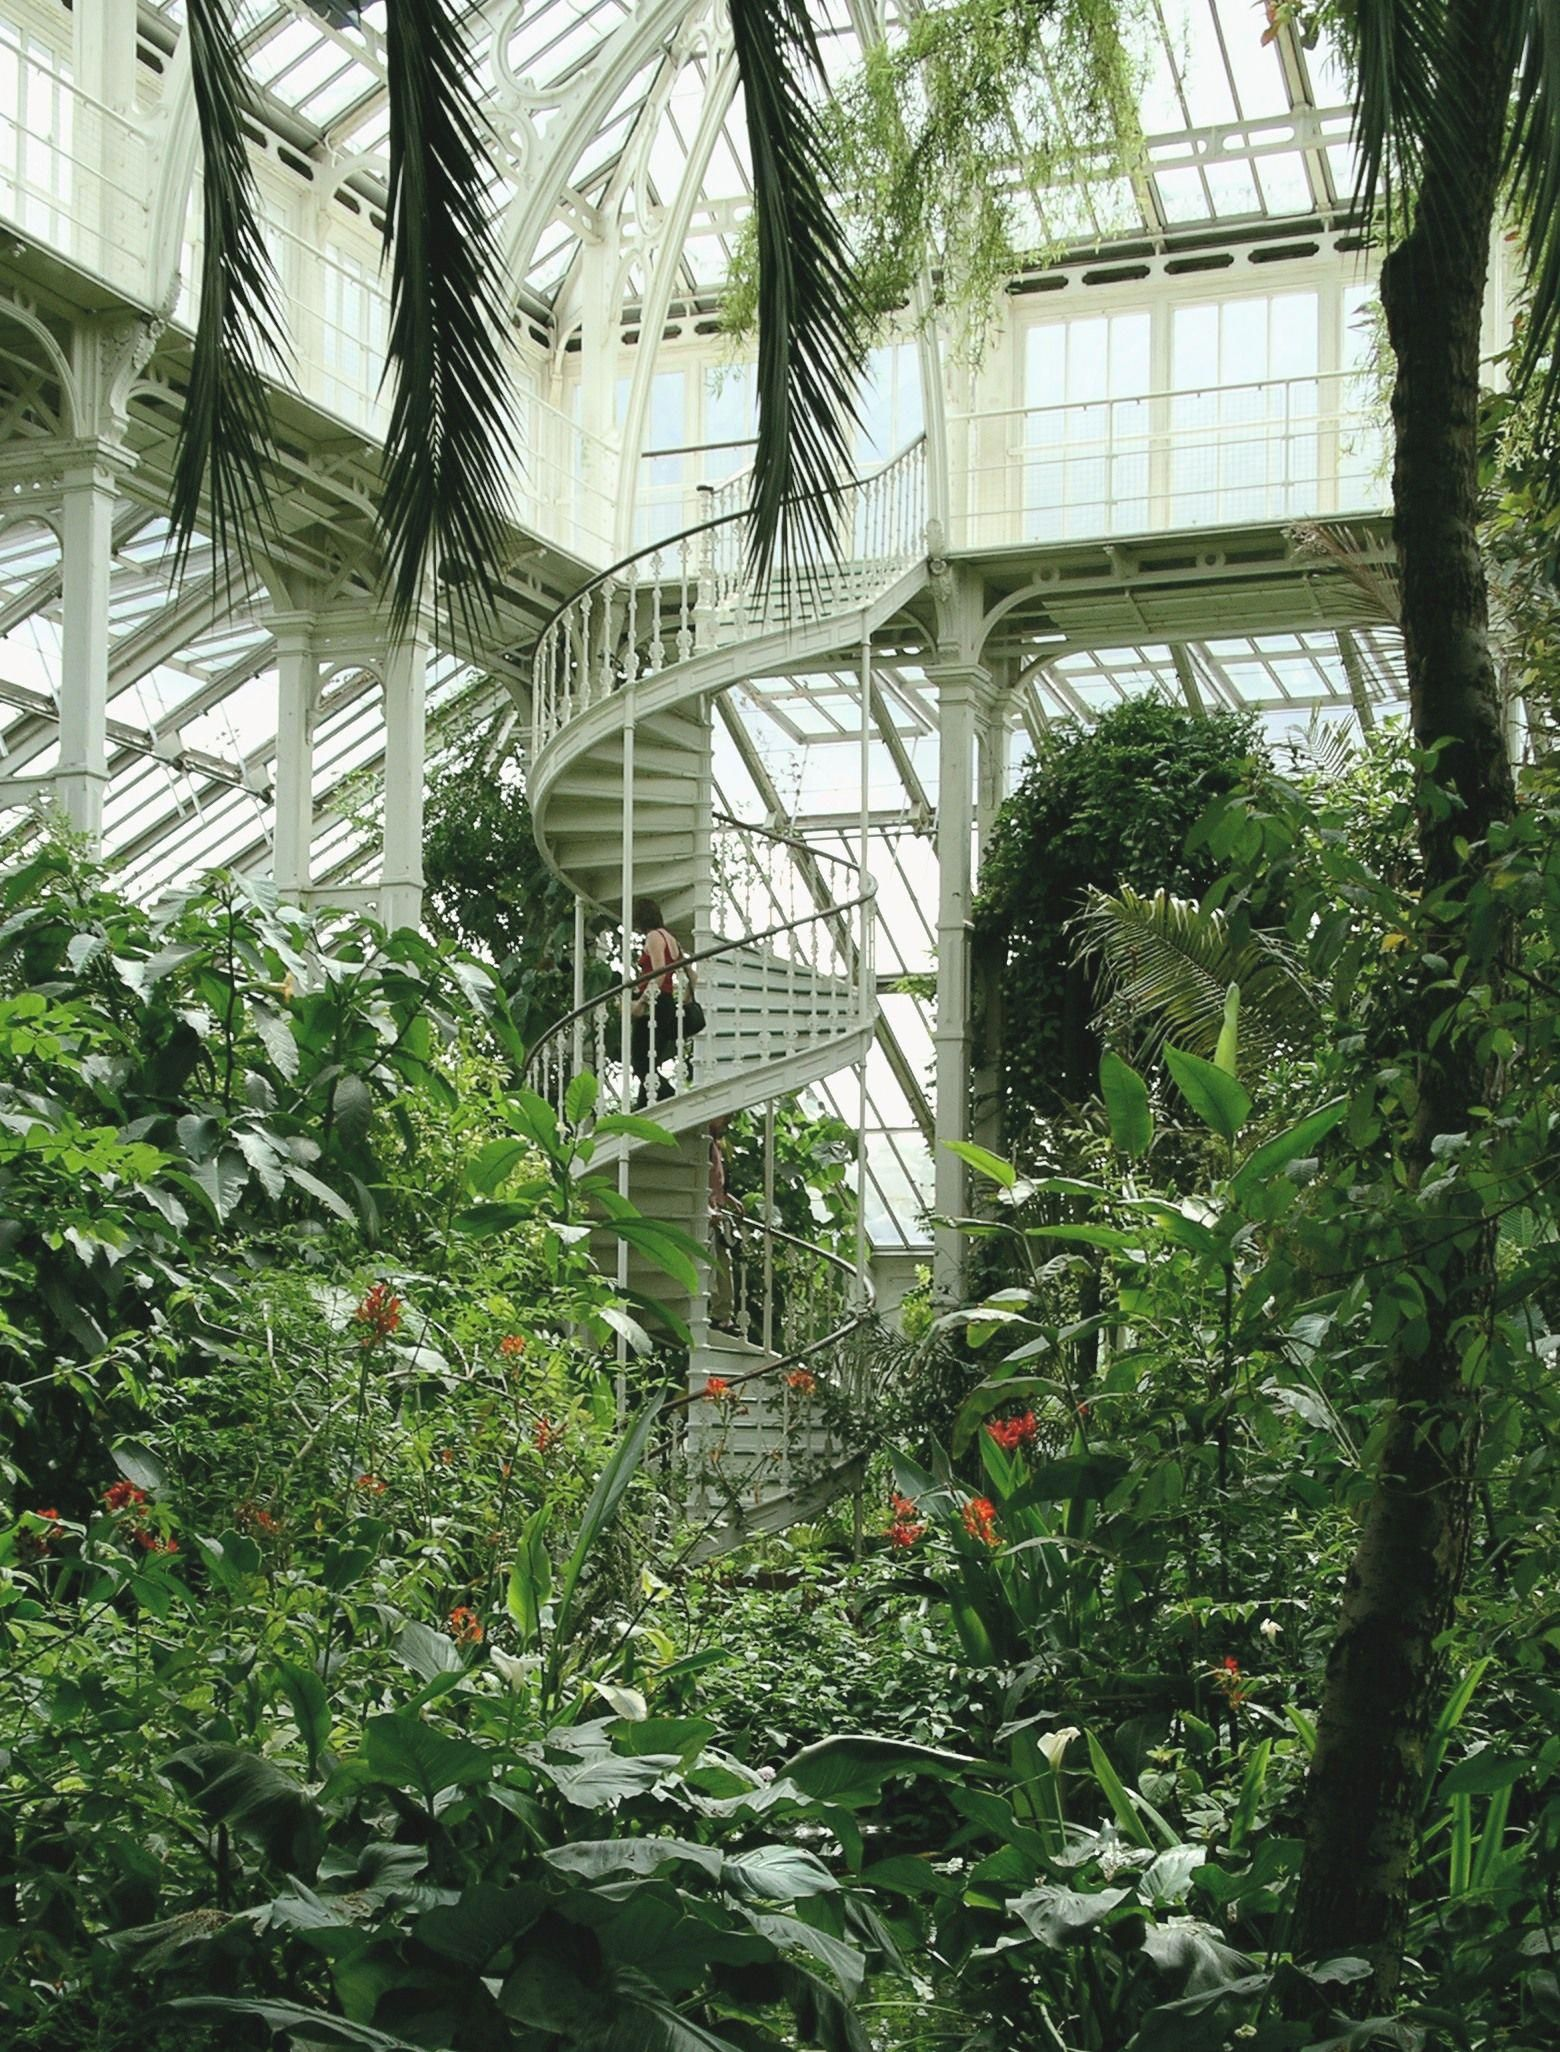 More pics of the Temperate House, Kew Gardens. my dream house! #botanicalgardens